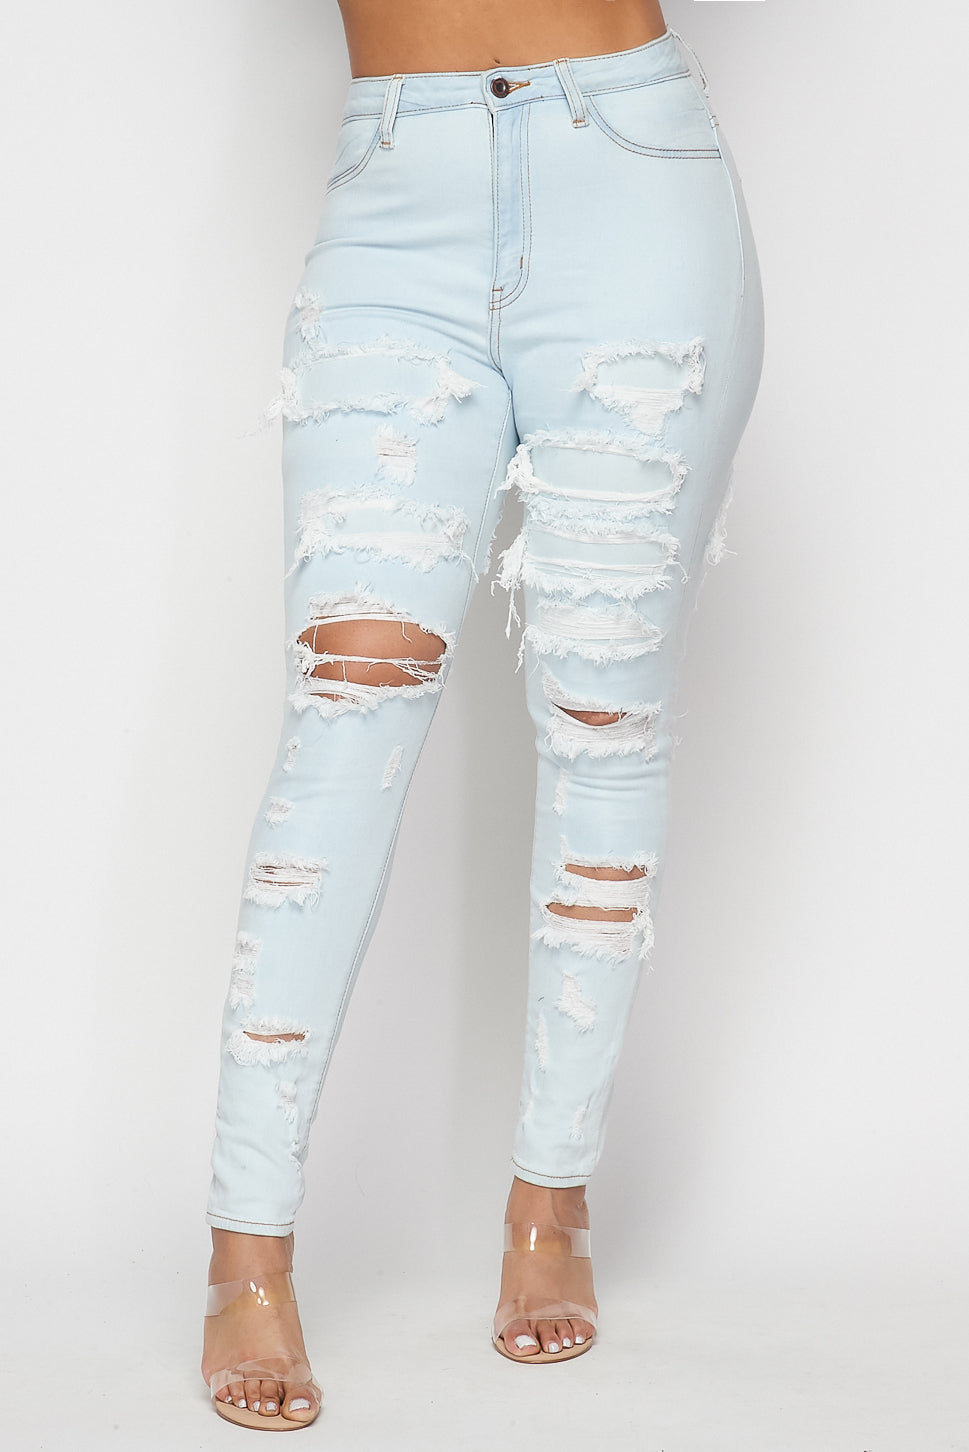 High Waist Distressed Skinny Jeans - Fashion House USA